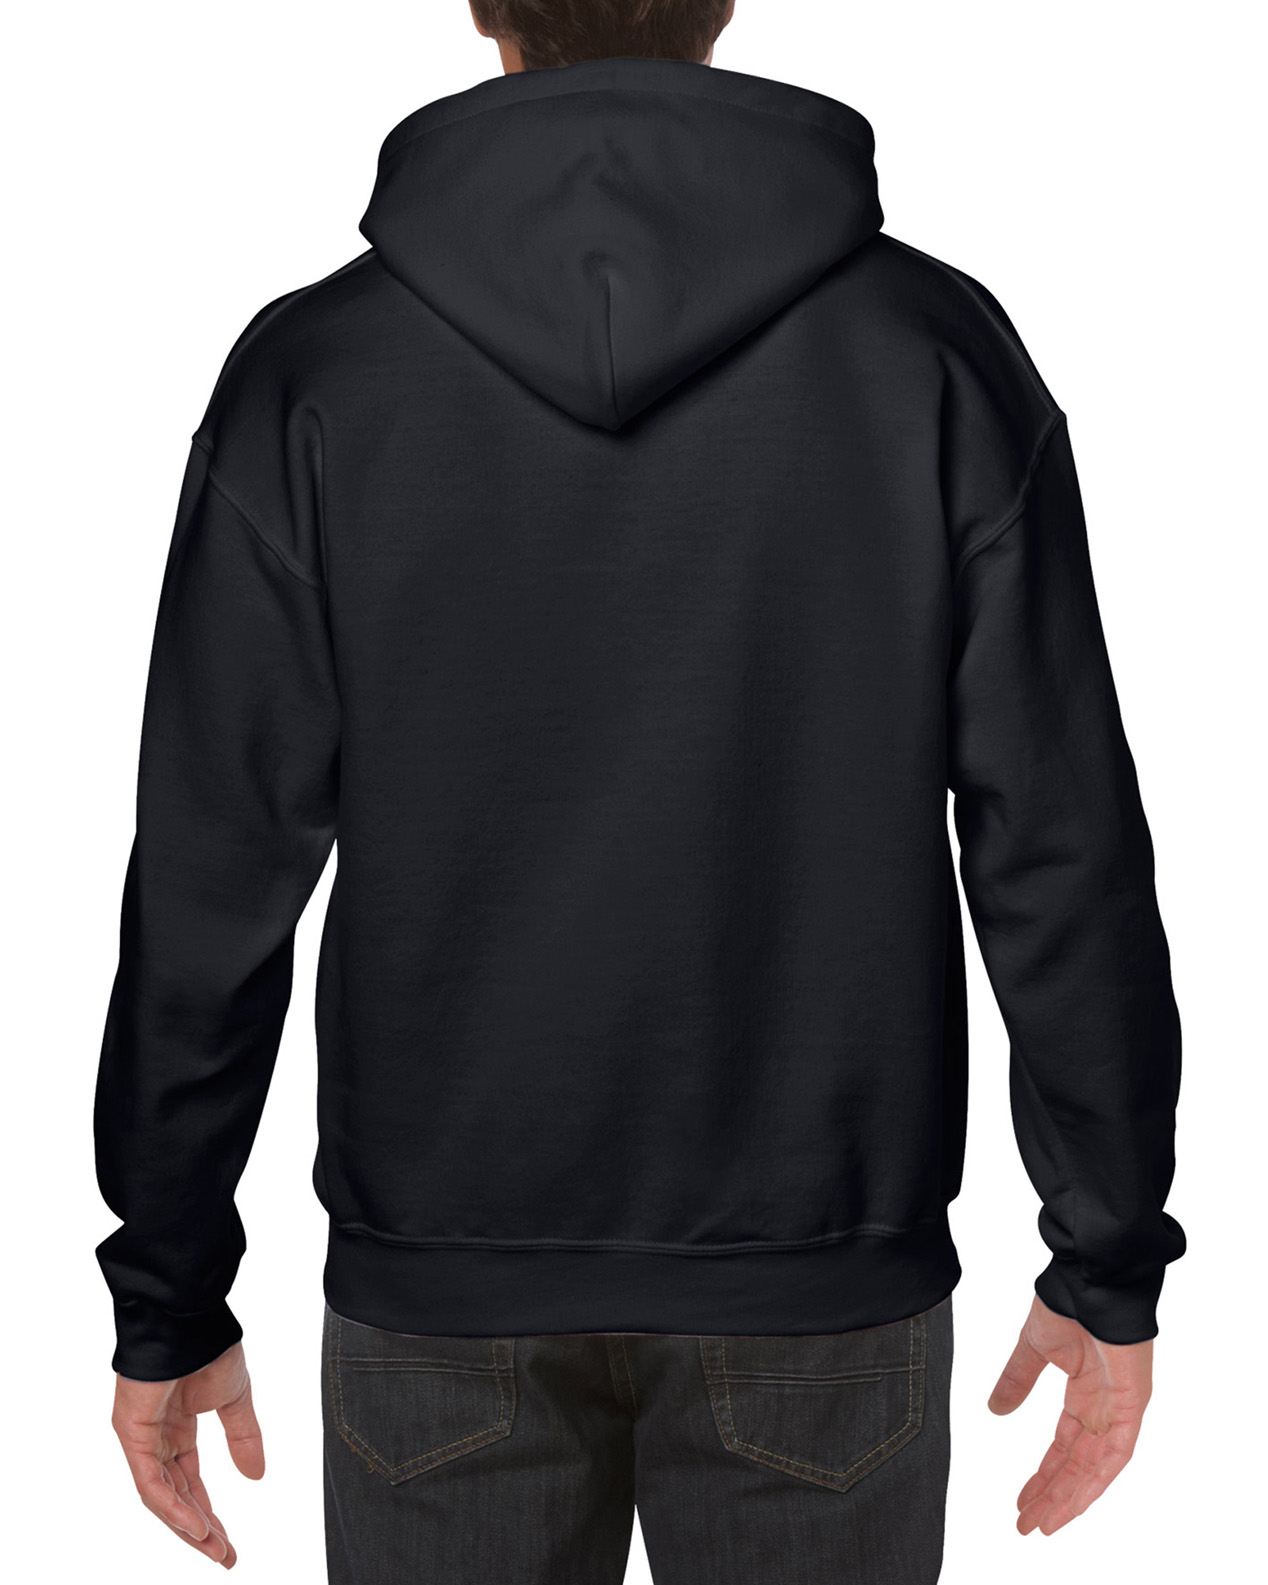 bad682e10f7 Custom Printed Gildan Heavy Blend Hooded Sweatshirt - Coastal Reign